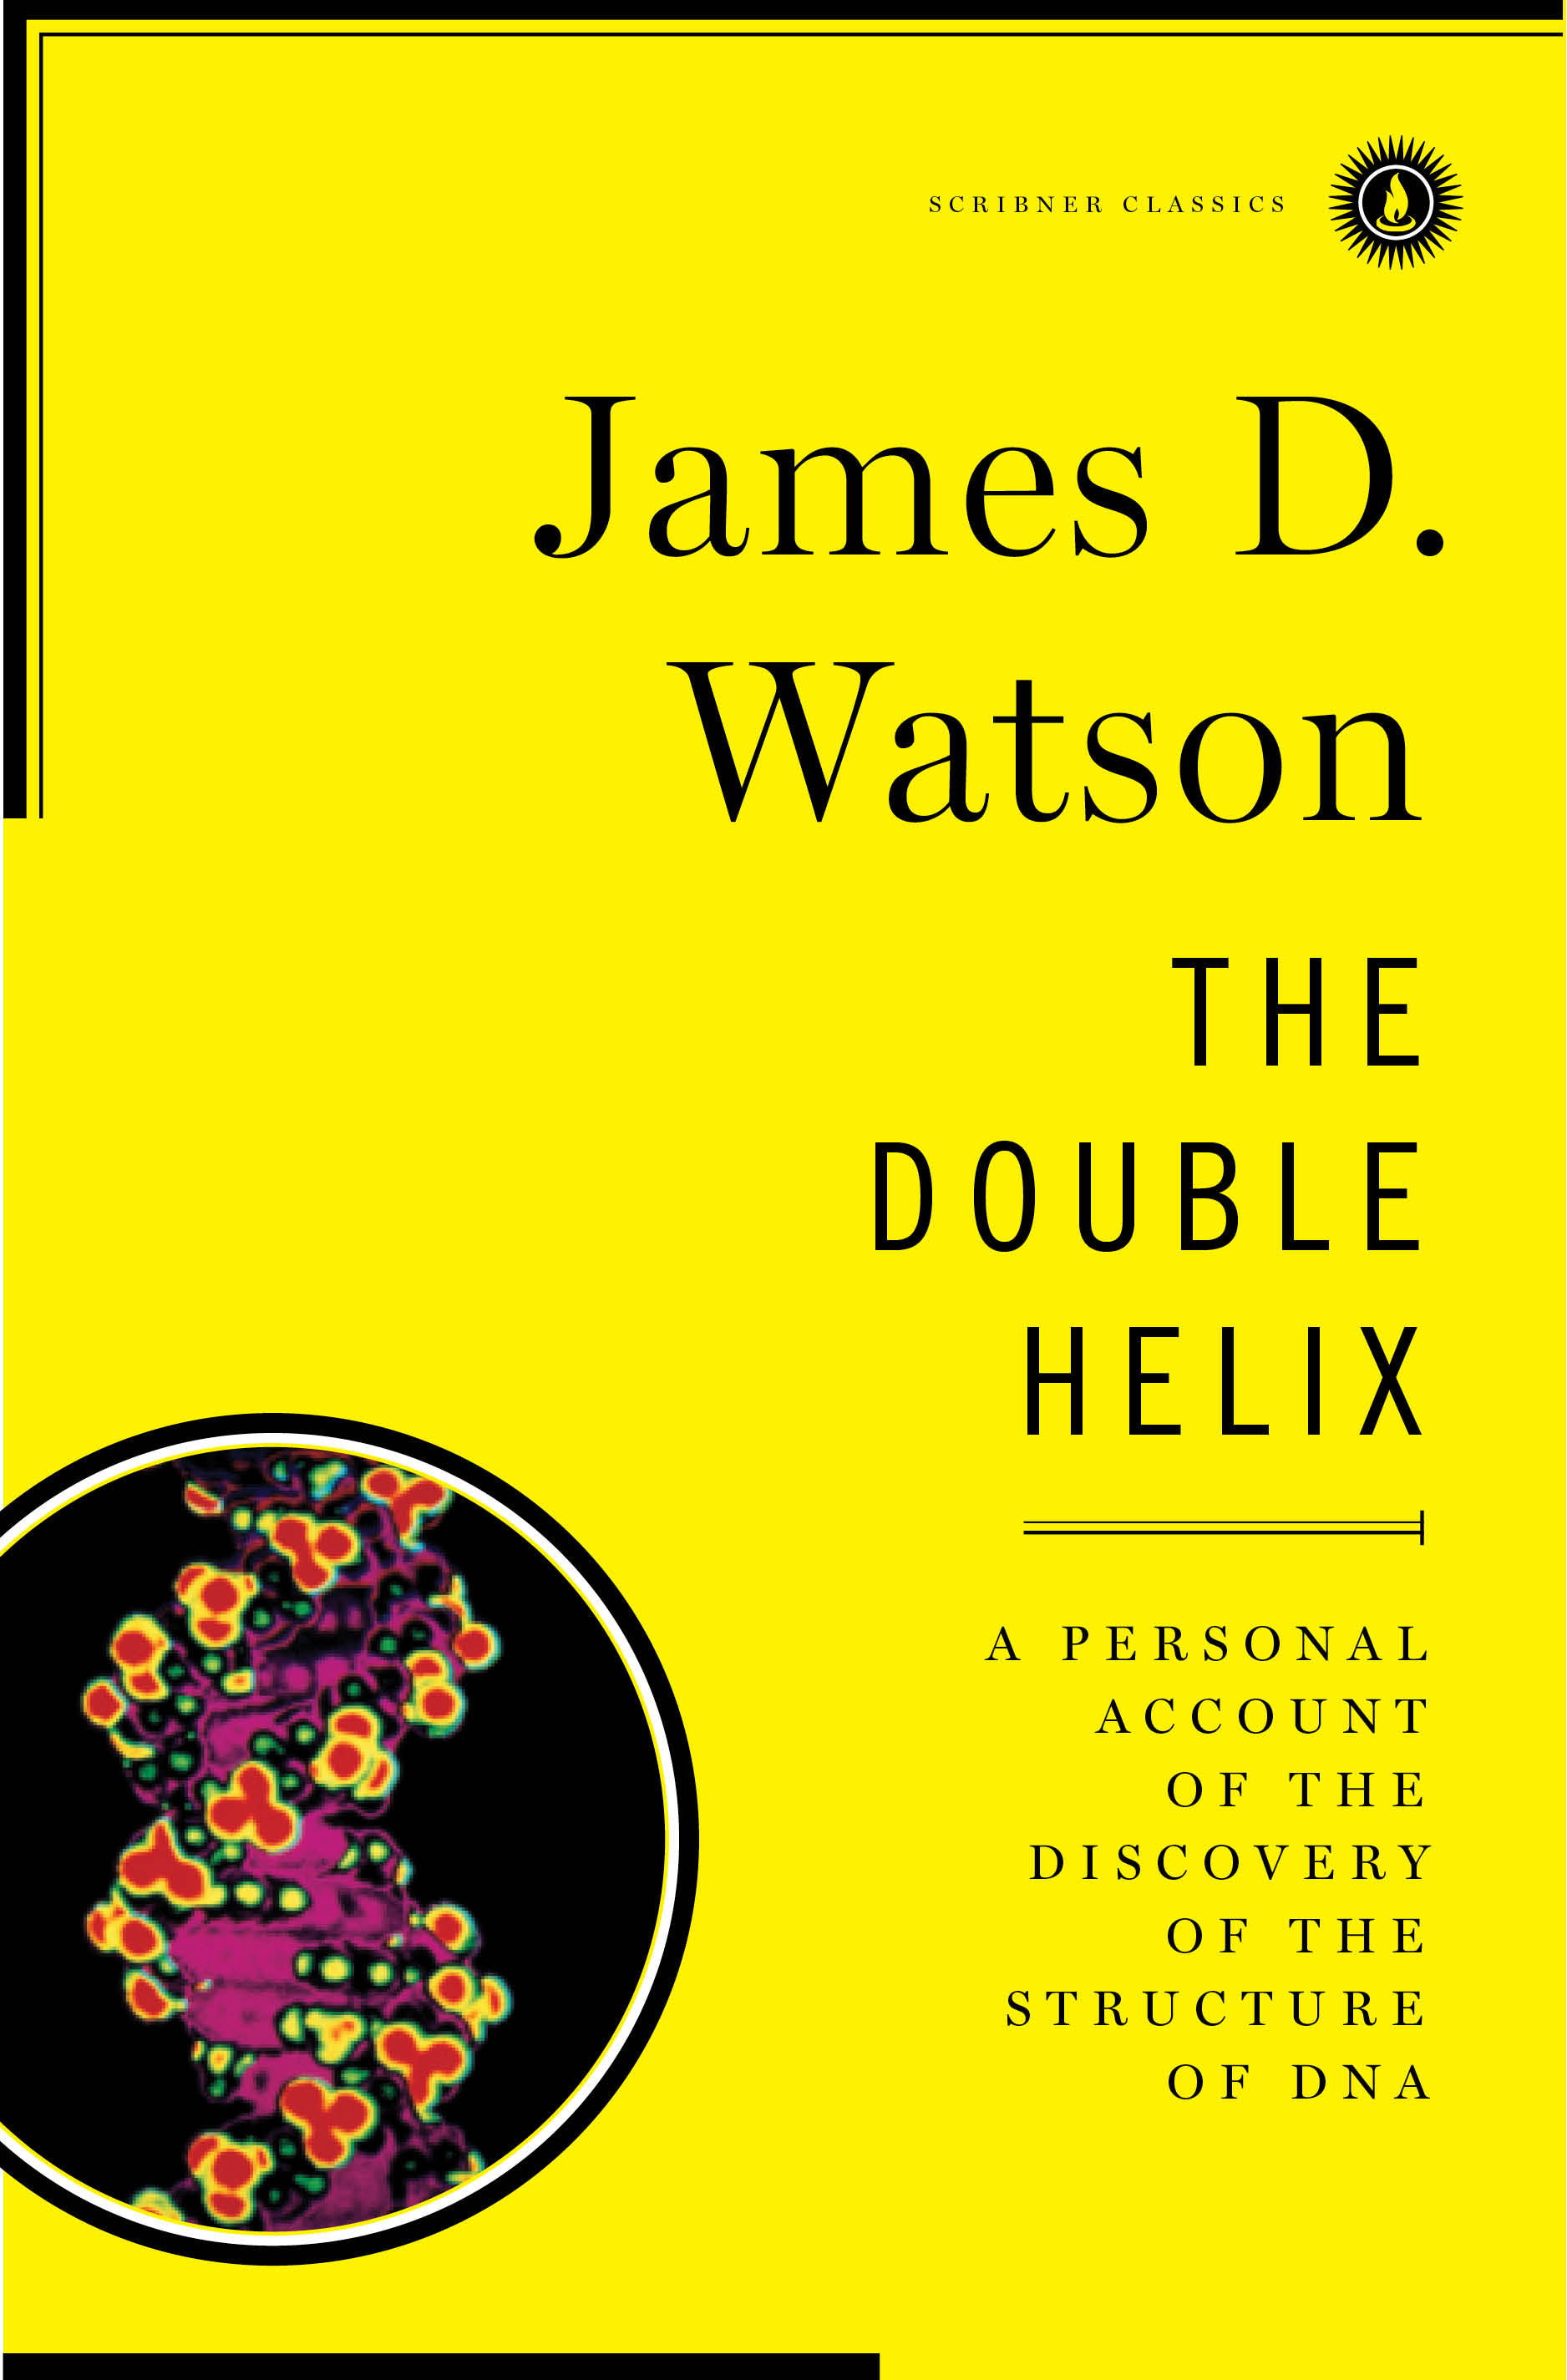 double helix book report The characters in the double helix this page gives a small description of the main characters in the double helix james d watson: james (jim) watson is the narrator of this book.